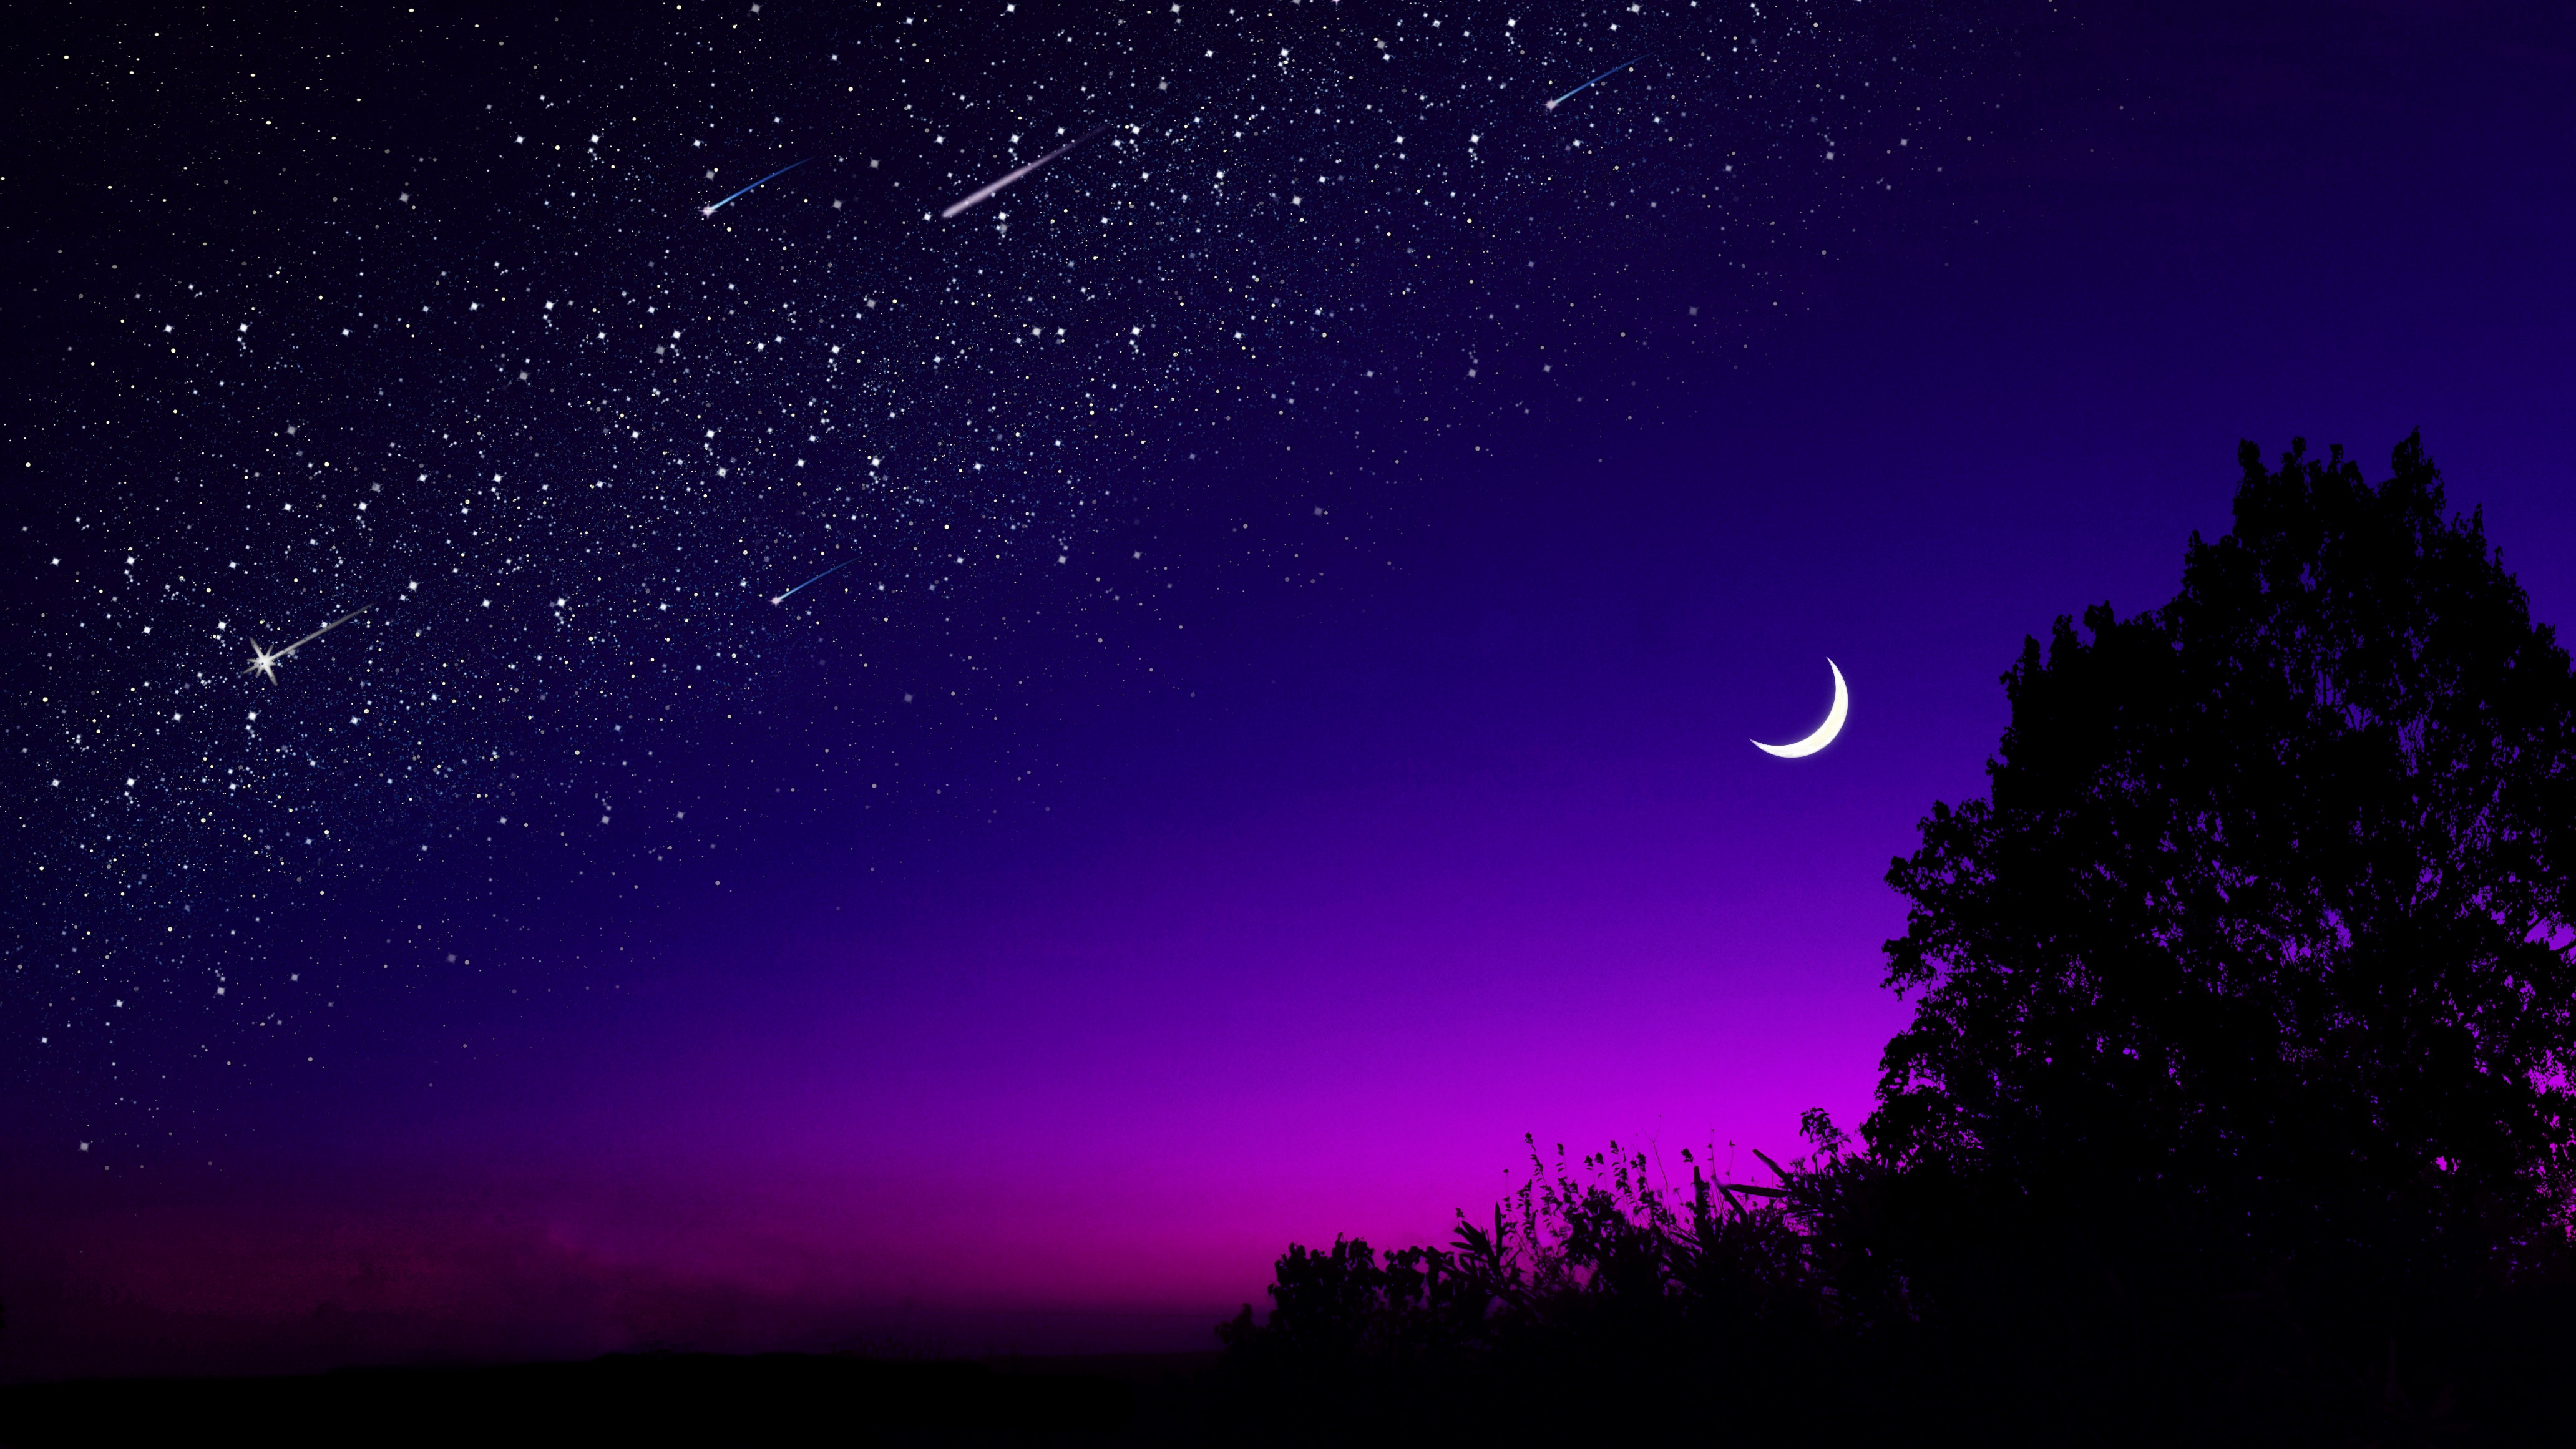 Nature Hd Wallpaper Purple Sky Posted By Christopher Peltier